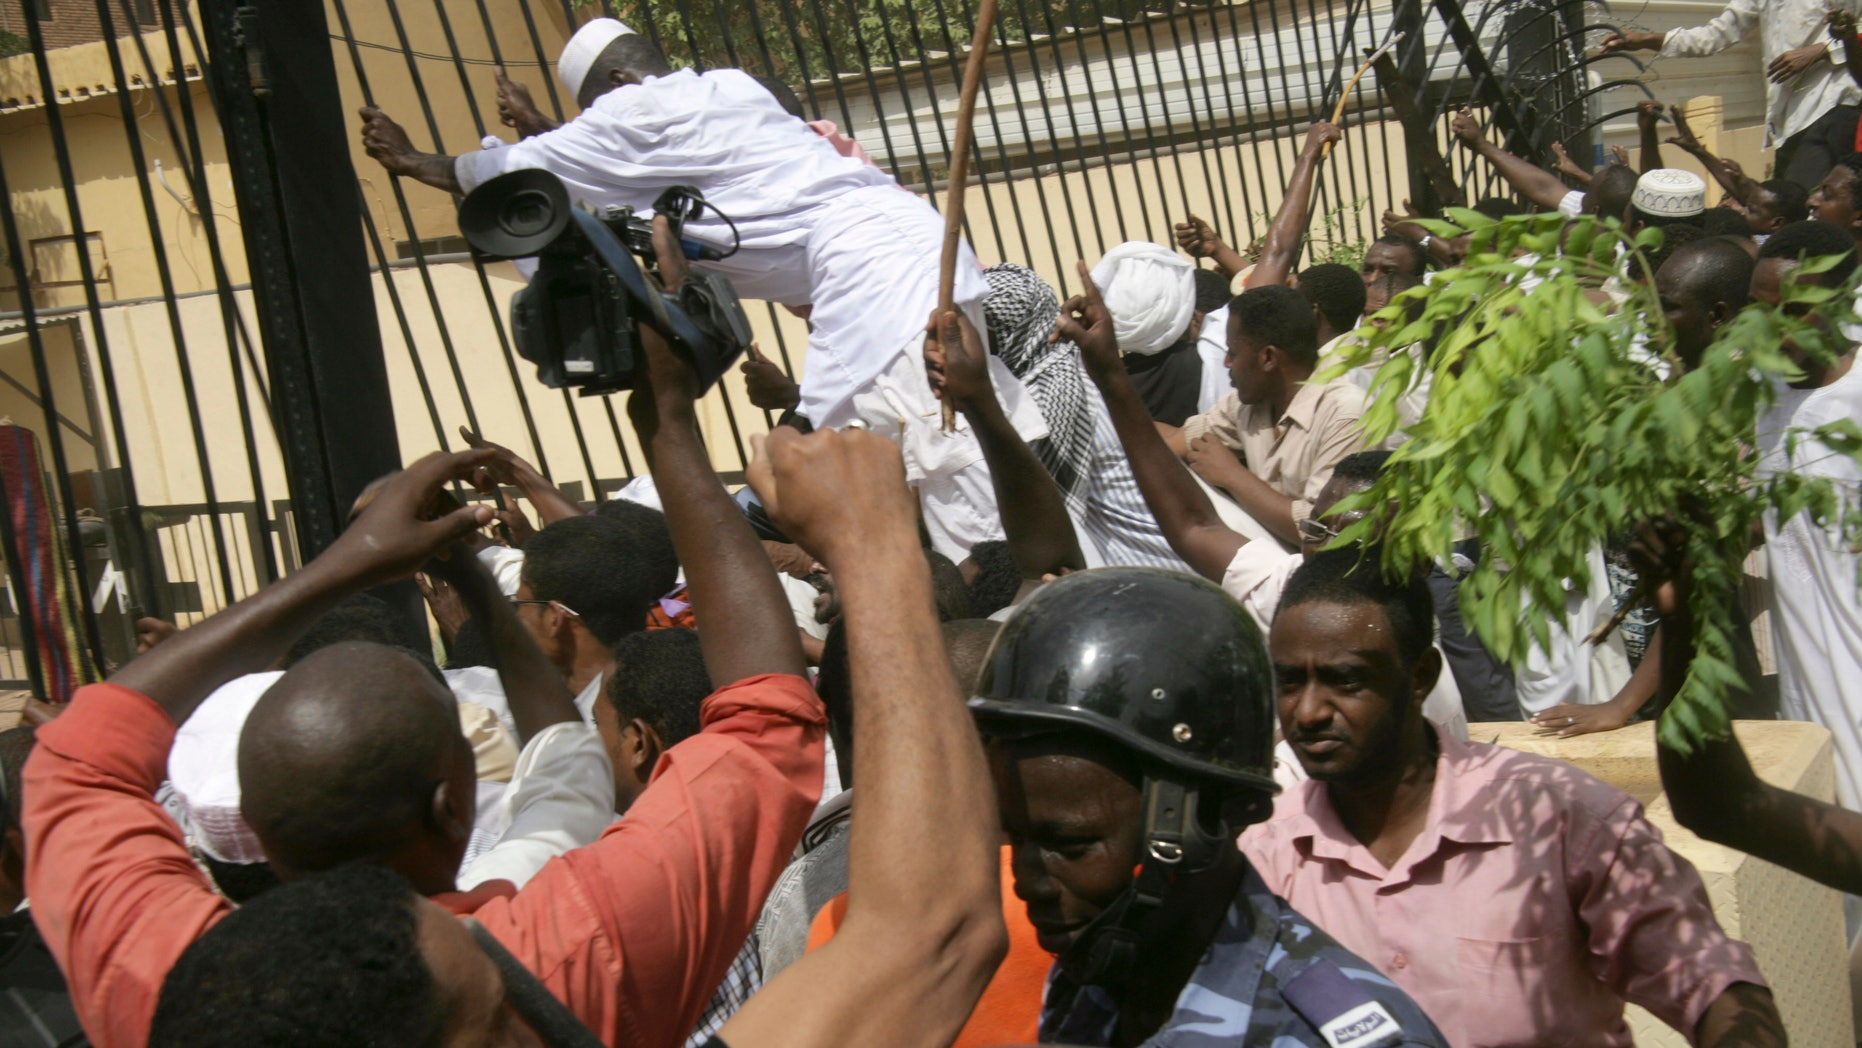 Friday, Sept. 14, 2012: Sudanese protesters and riot police face off during a protest outside the German embassy in Khartoum, Sudan.